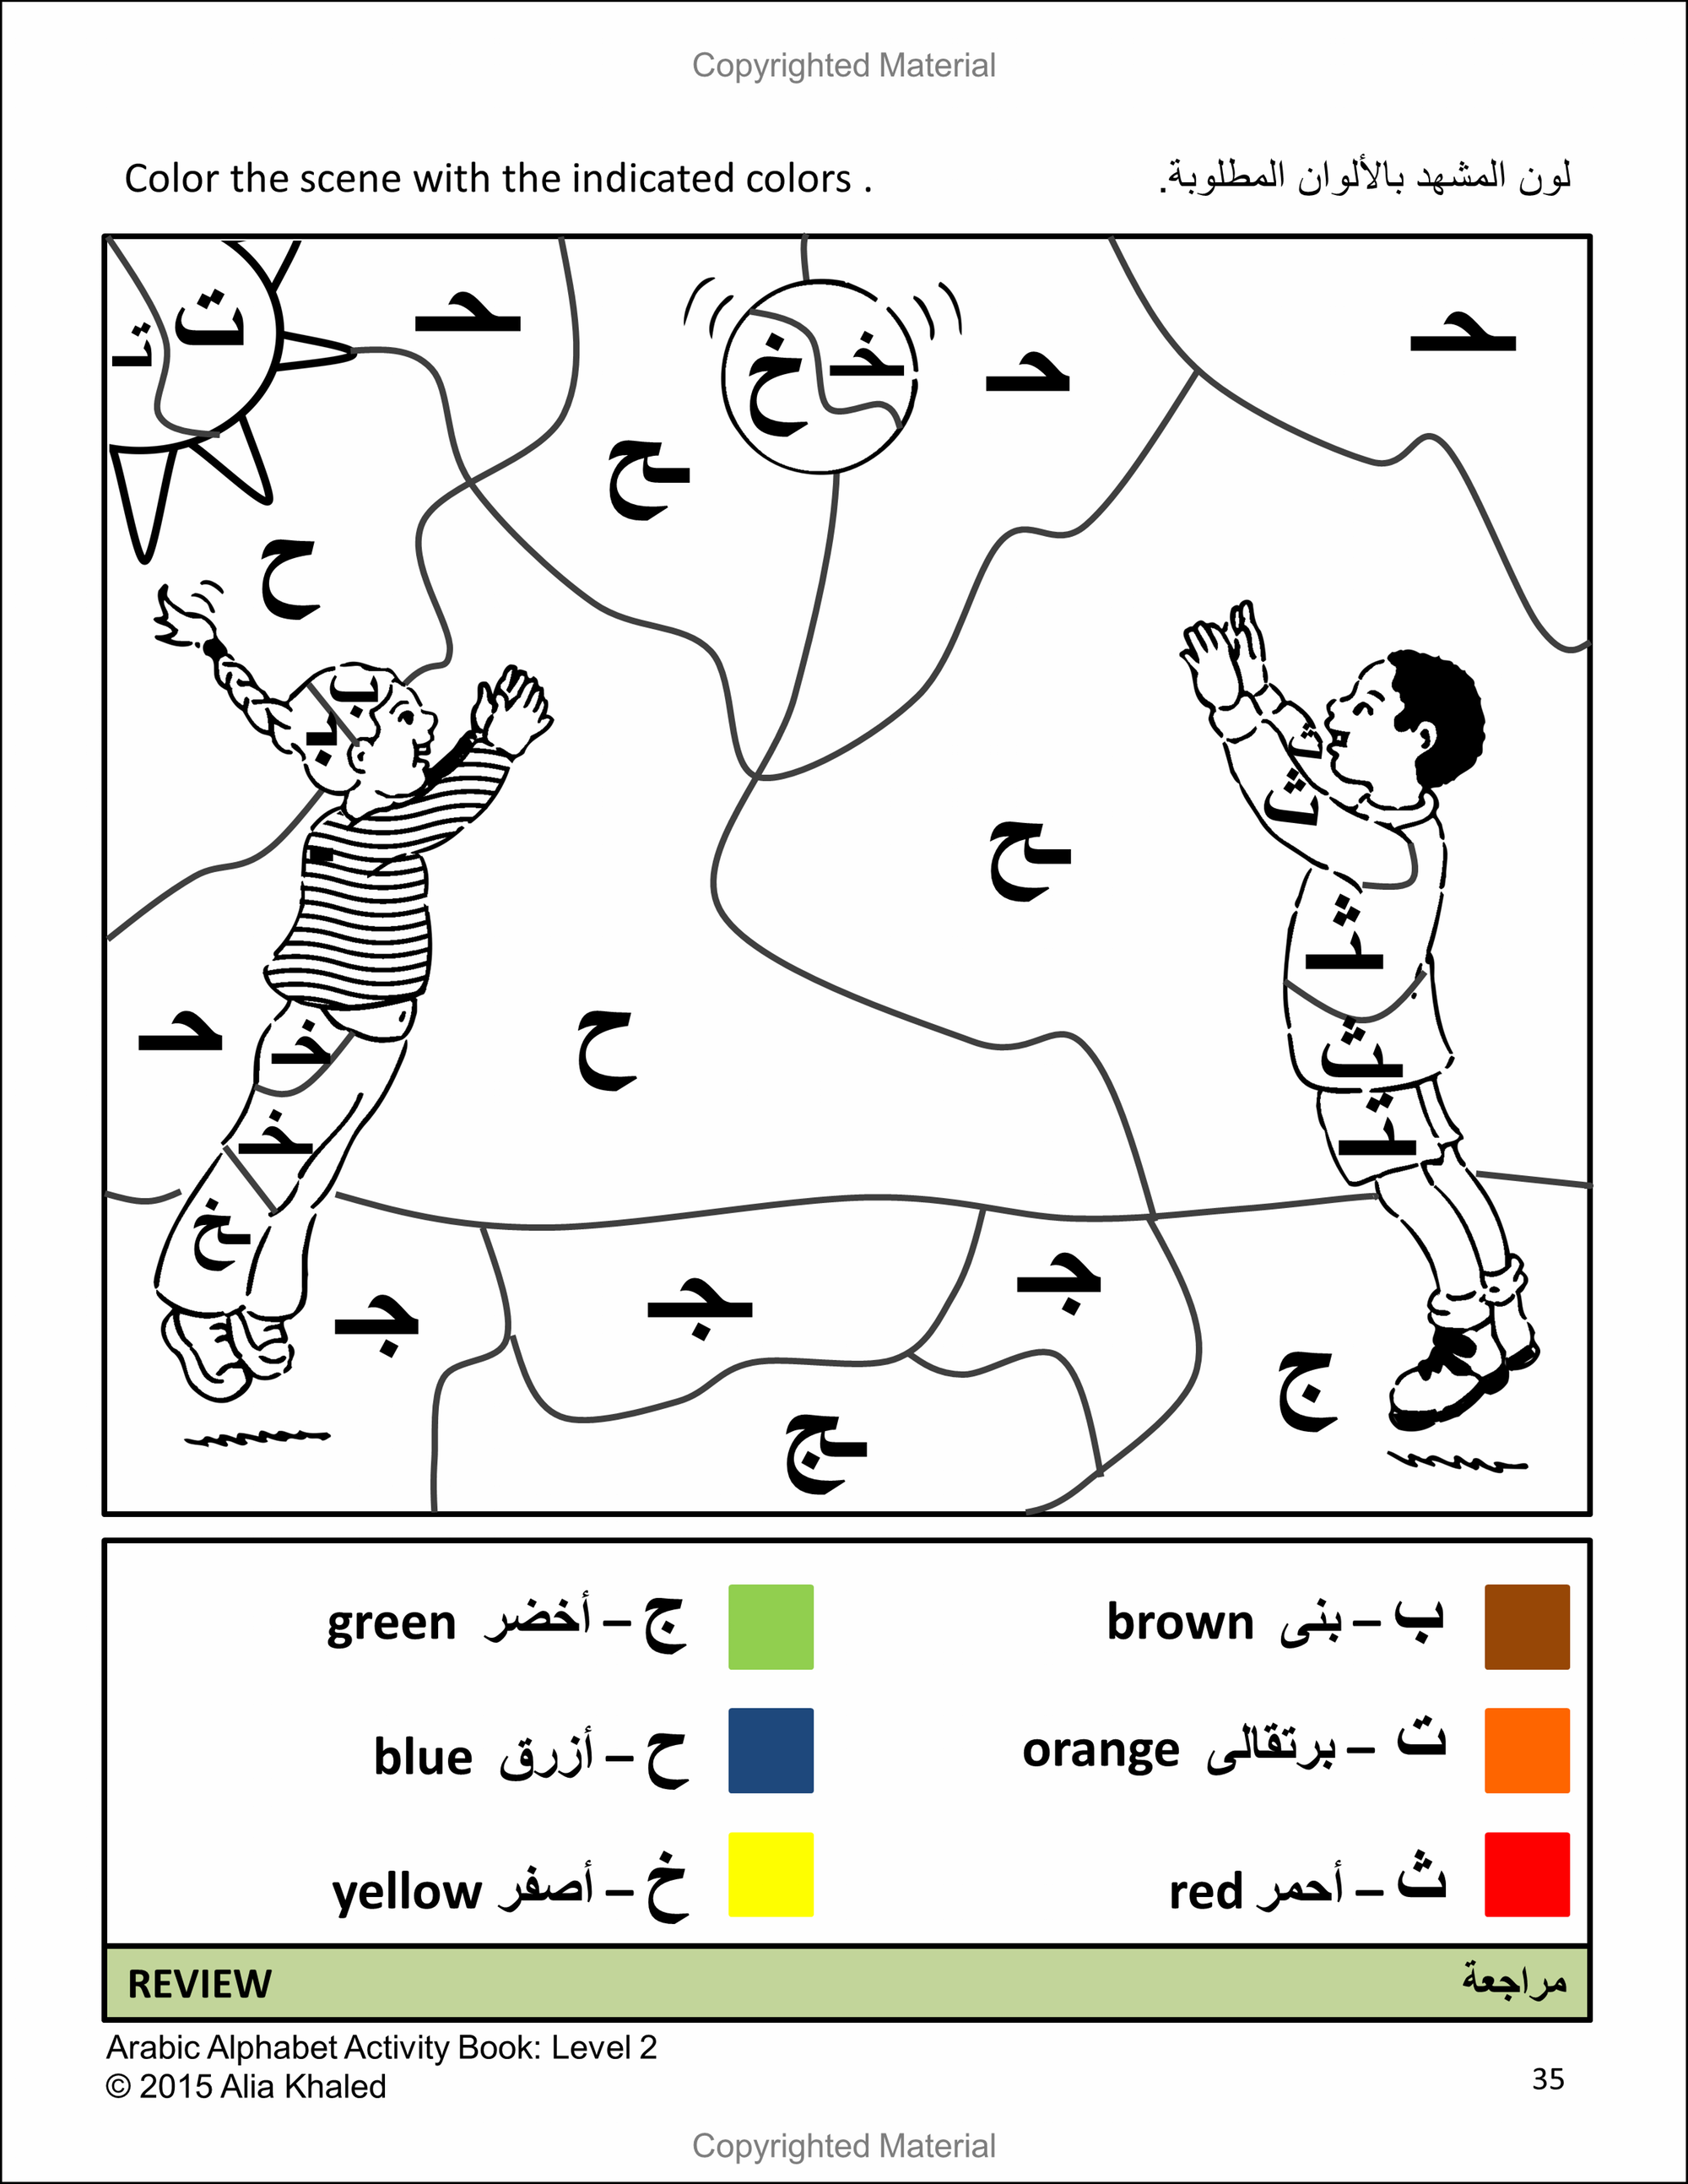 Image Of Arabic Alphabet Activity Book Level 2 Colored